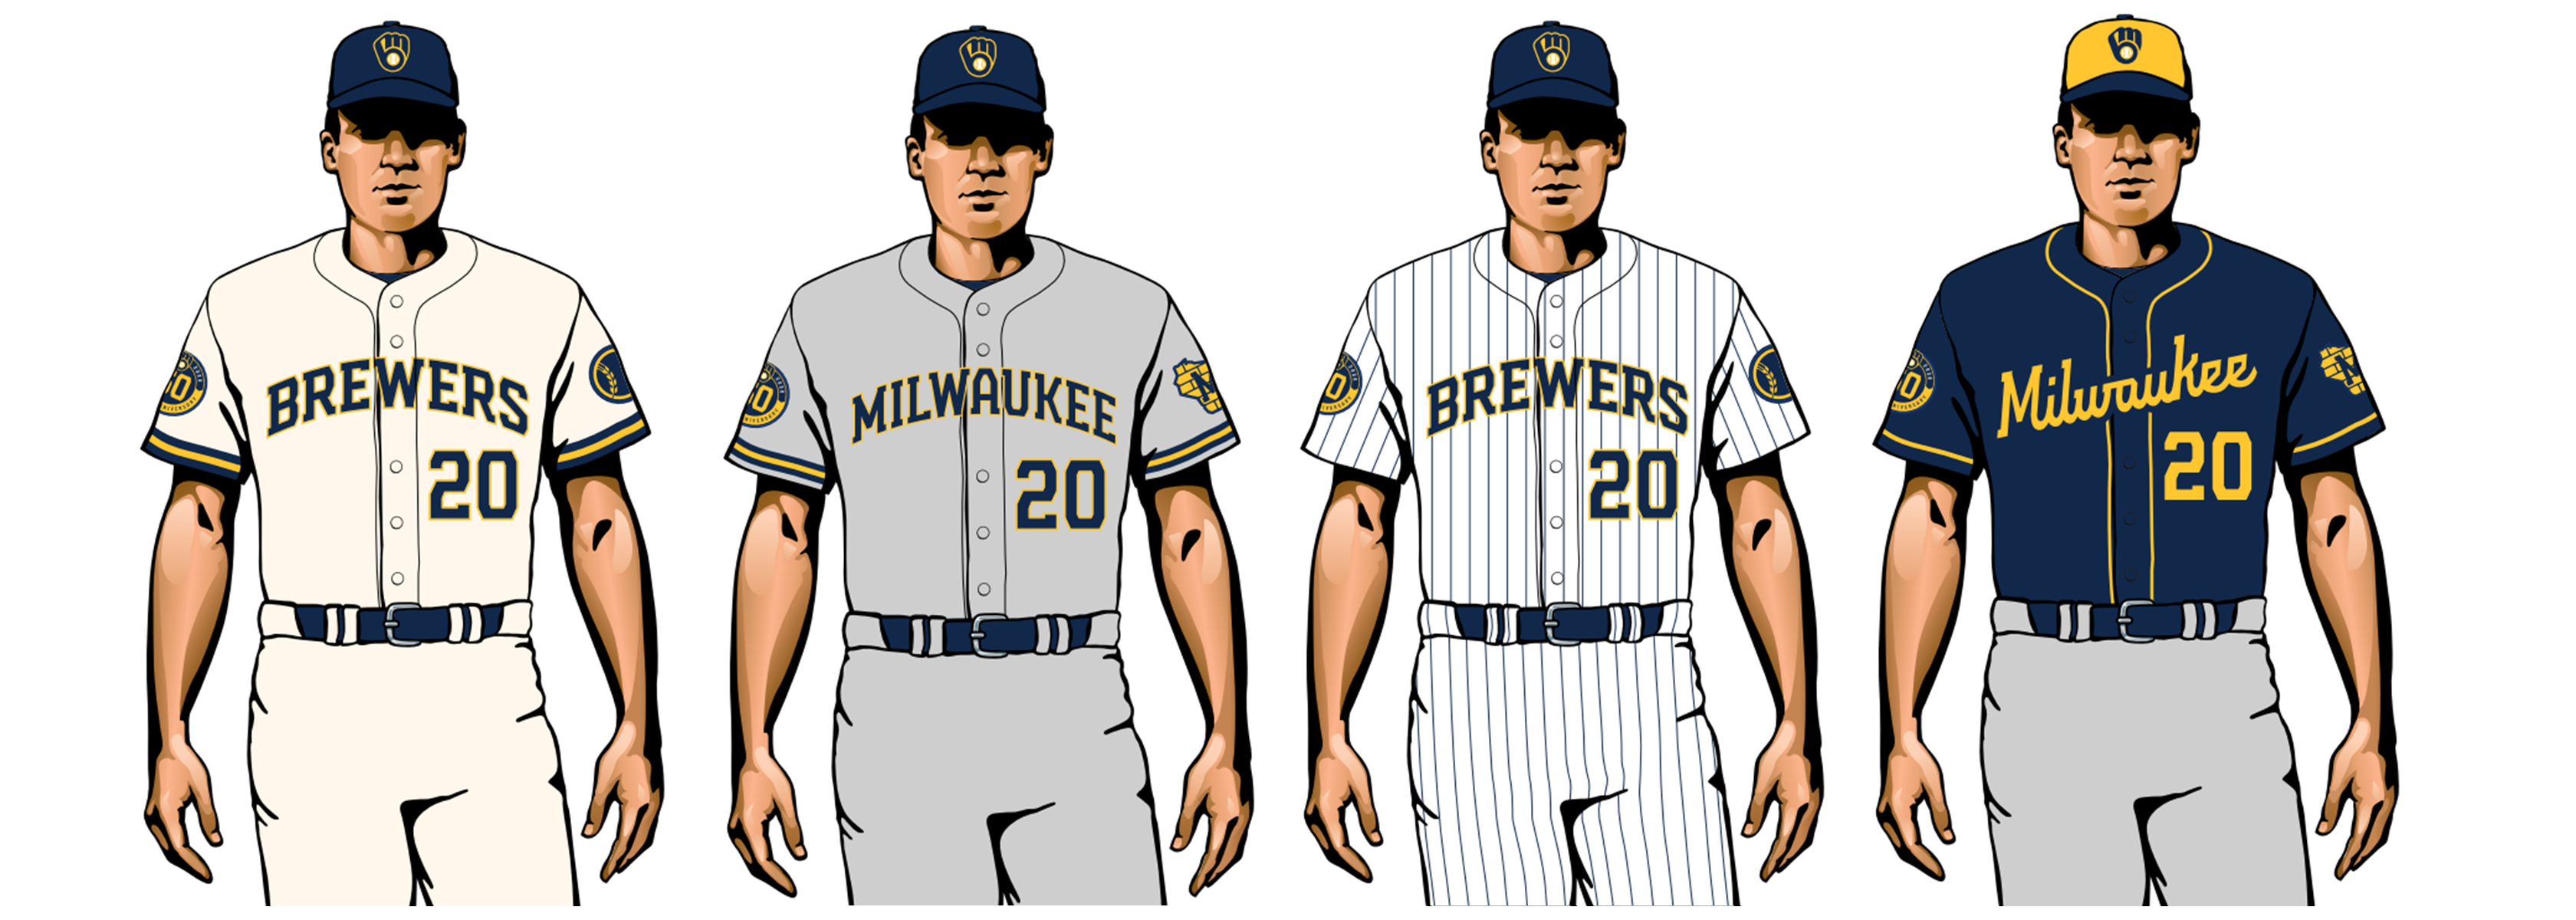 milwaukee brewers 2020 uniforms